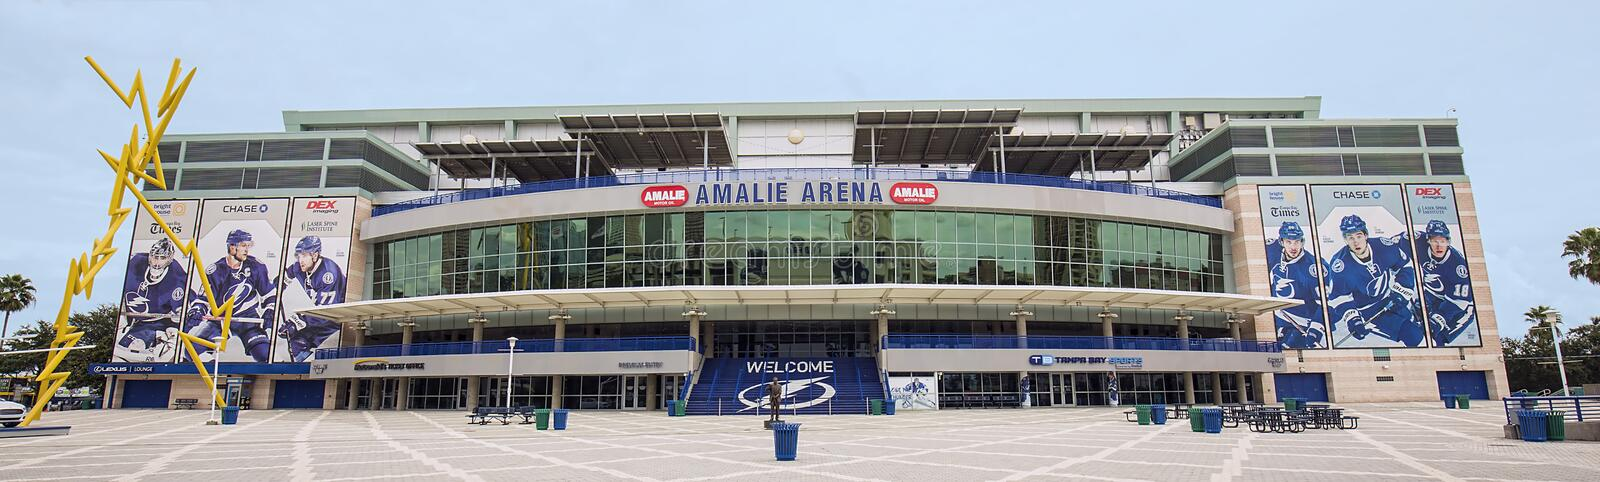 Amalie Arena photo stock